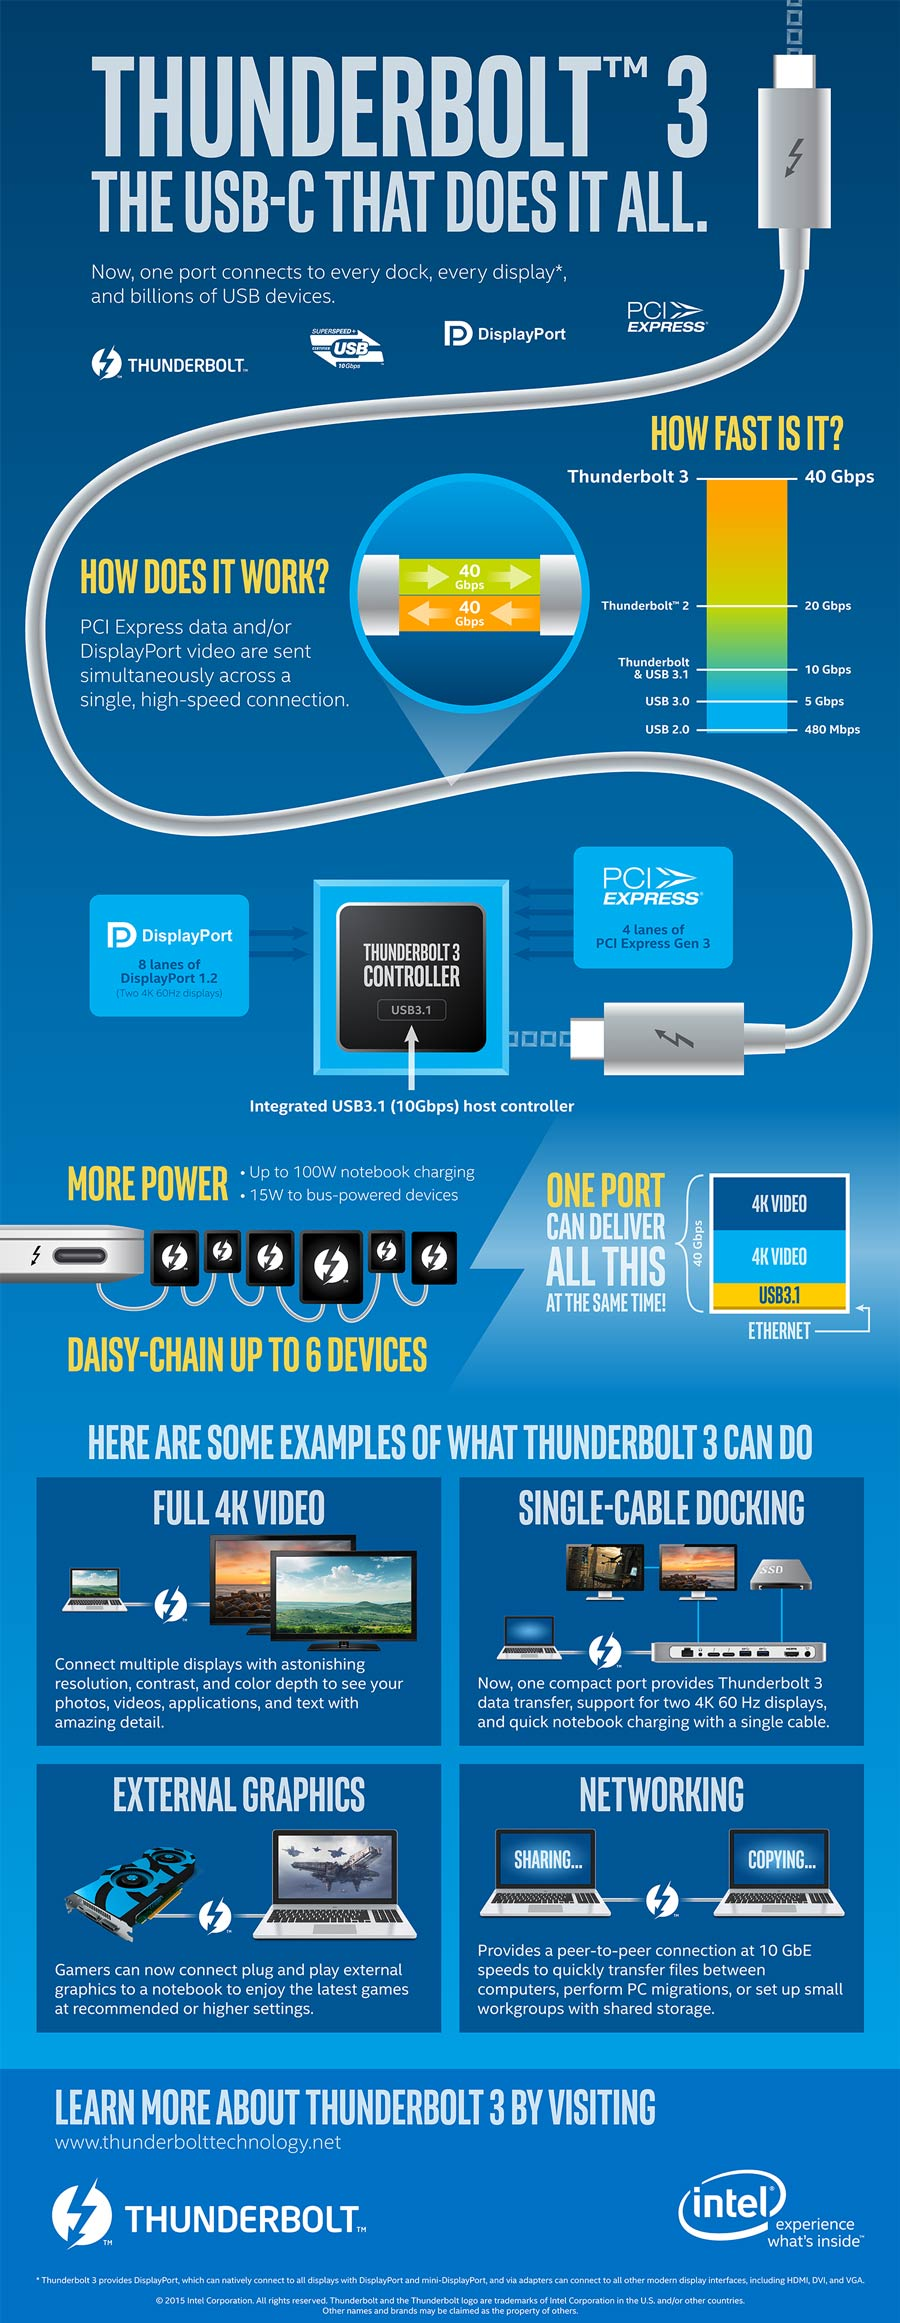 Thunderbolt™ 3 Port: The USB-C That Does It All